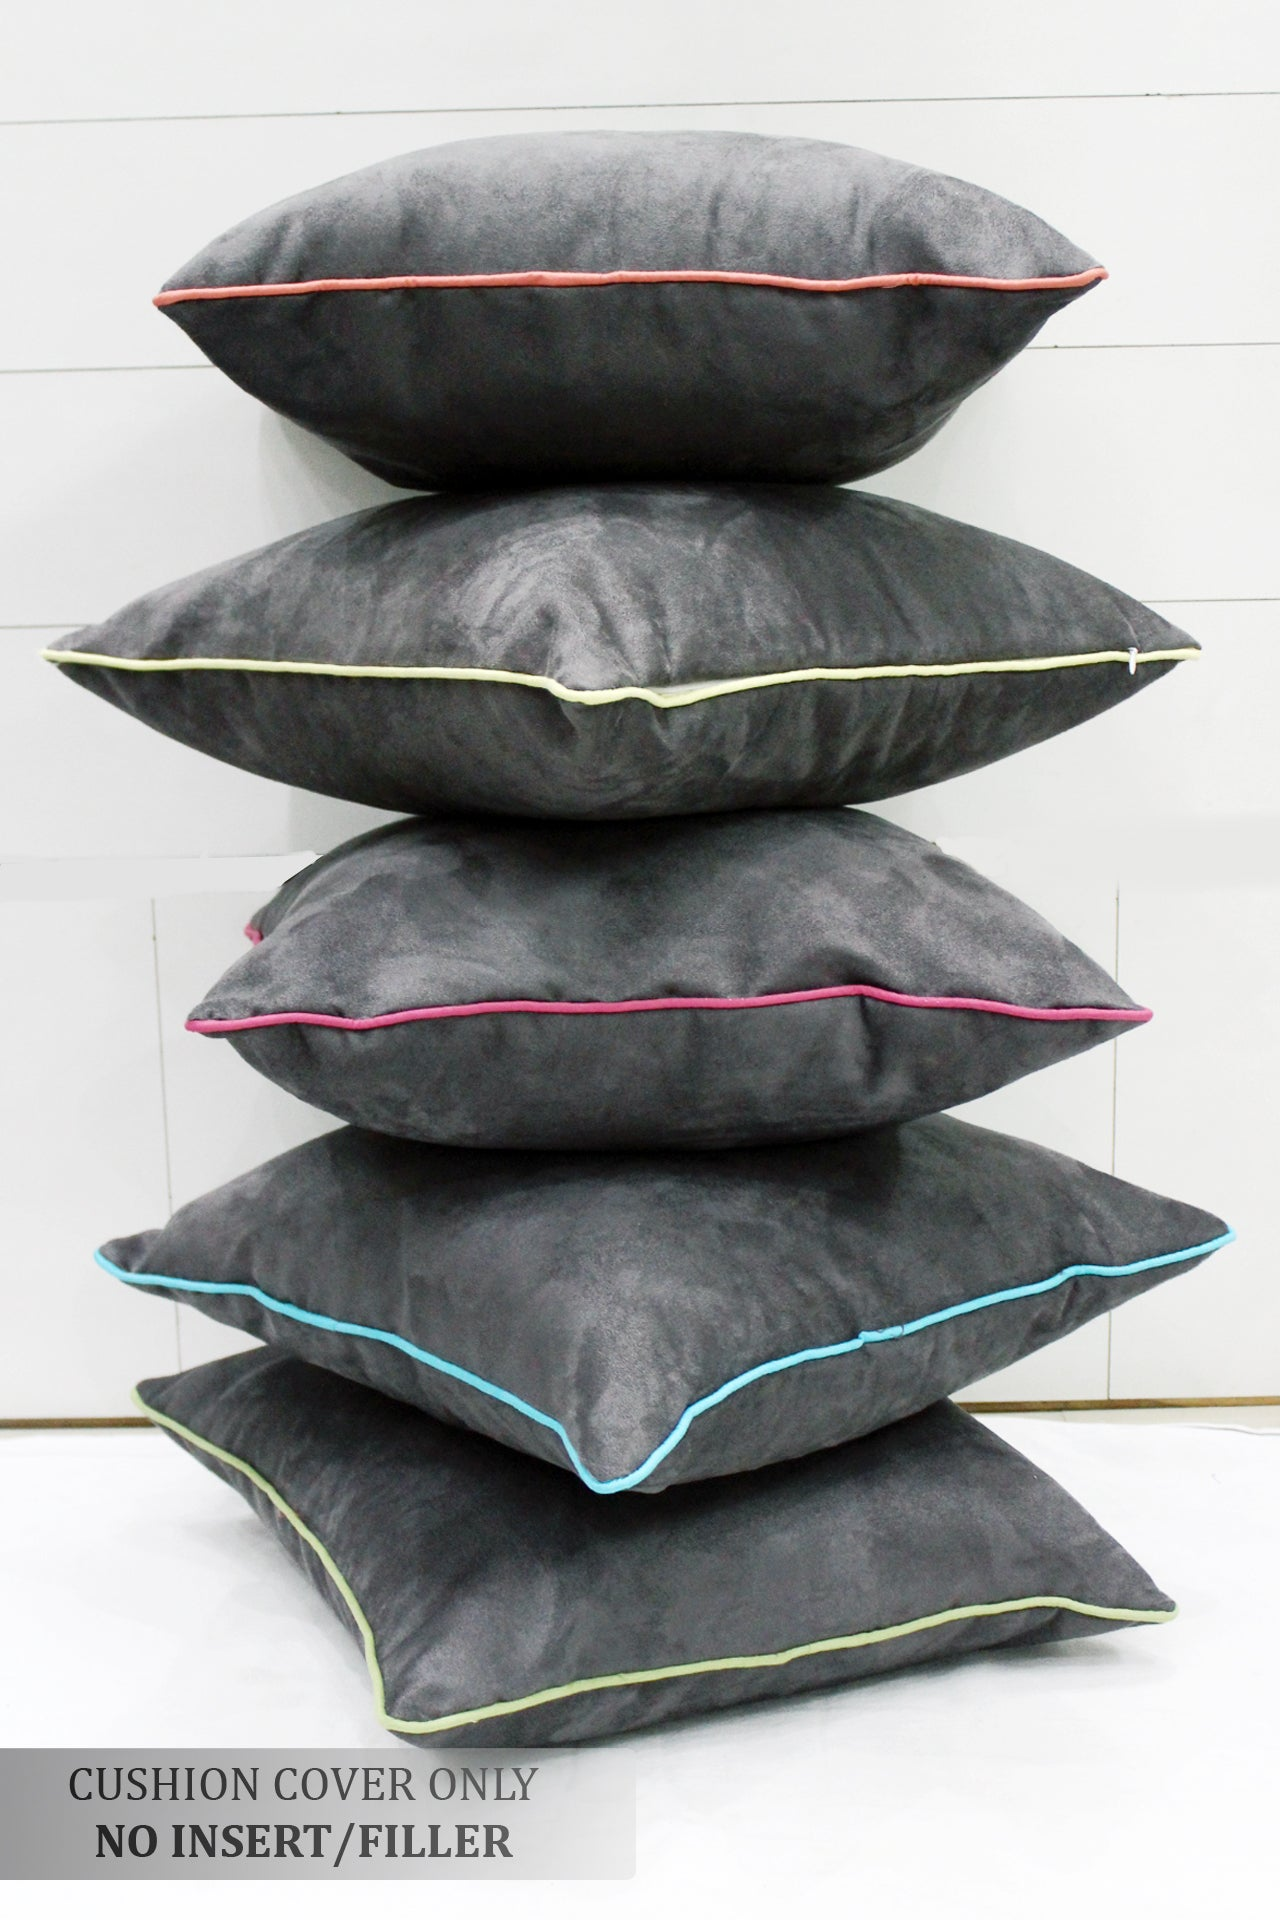 AURAVE Suede Velvety Cushion Cover for Sofa/Couch (16 X 16 inches)- 5 Pieces Set - Grey